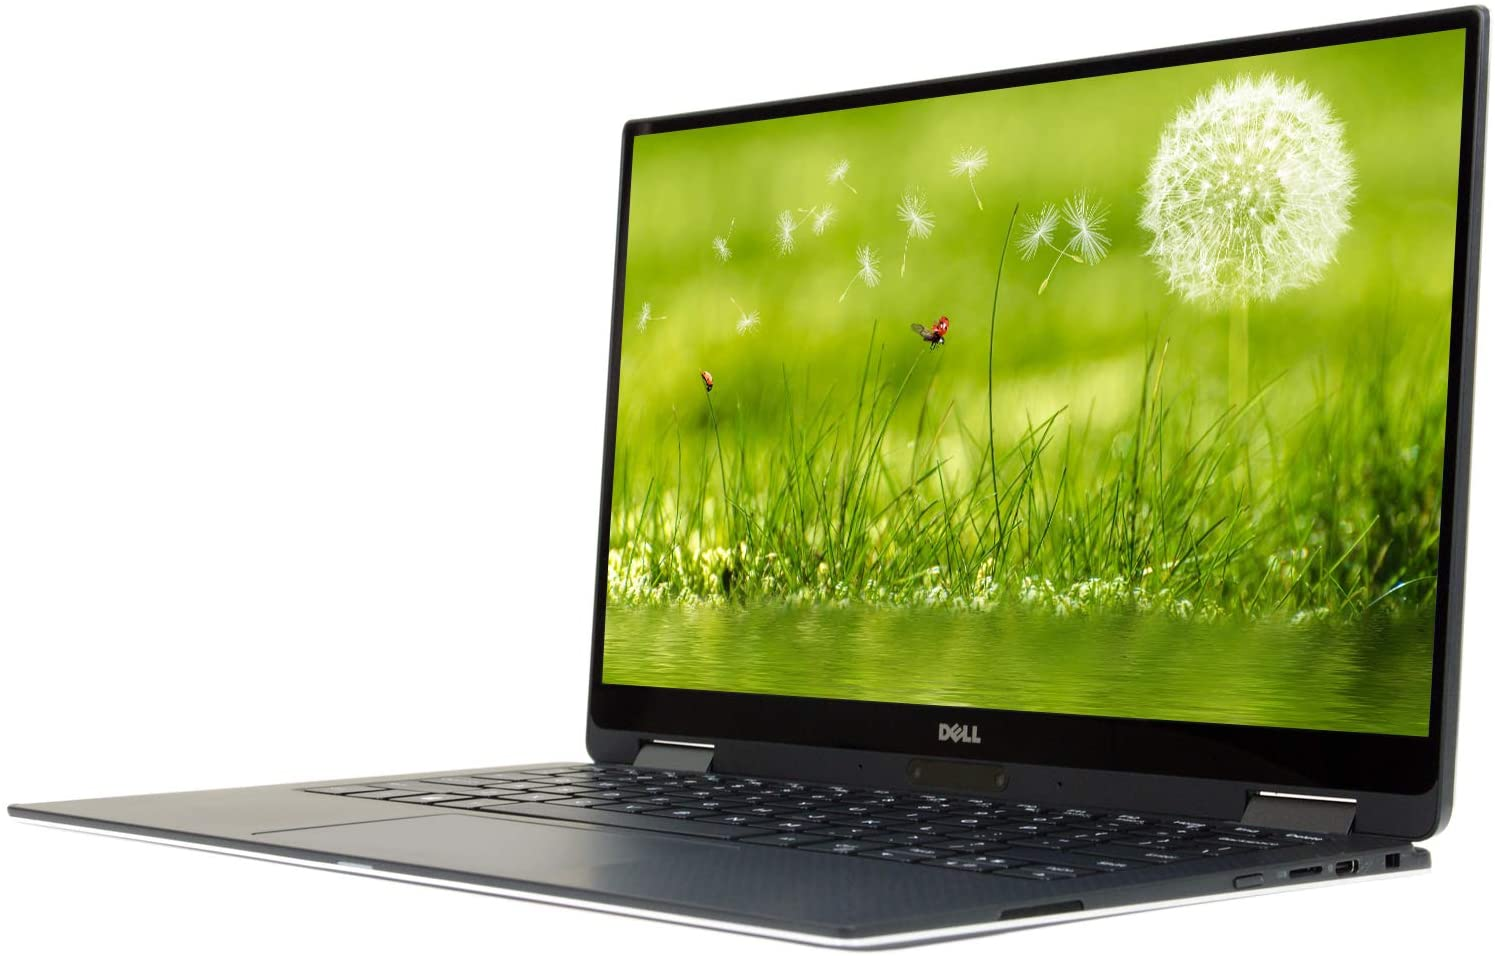 Dell XPS 13 9365 13.3 inches FHD, Core i7-7Y75 1.3GHz, 16GB RAM, 256GB Solid State Drive, Windows 10 Pro 64Bit, CAM, Touch (Renewed)